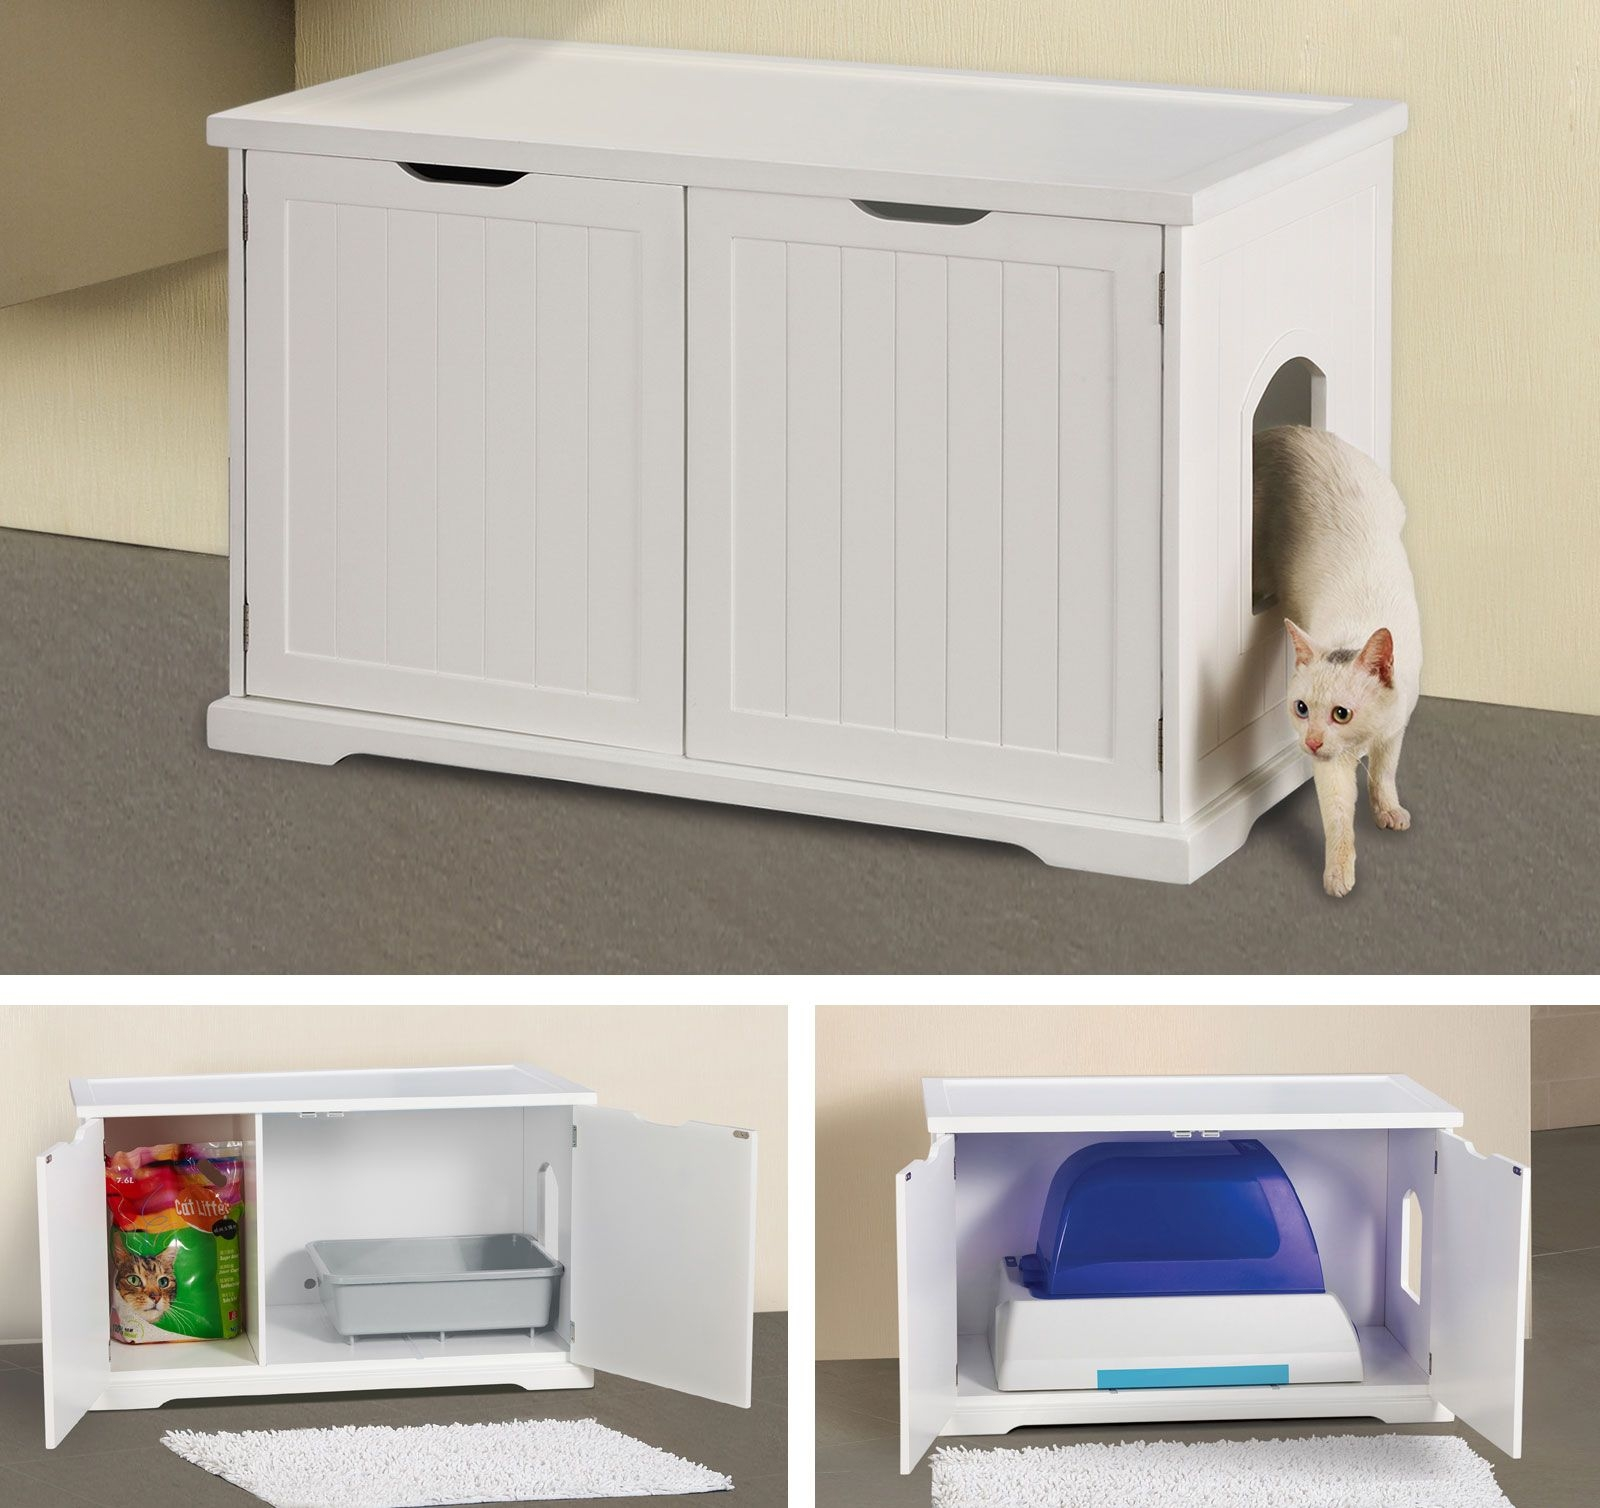 Cat Washroom Bench Litter Box Enclosure & Kitty Litter Cover - Foter